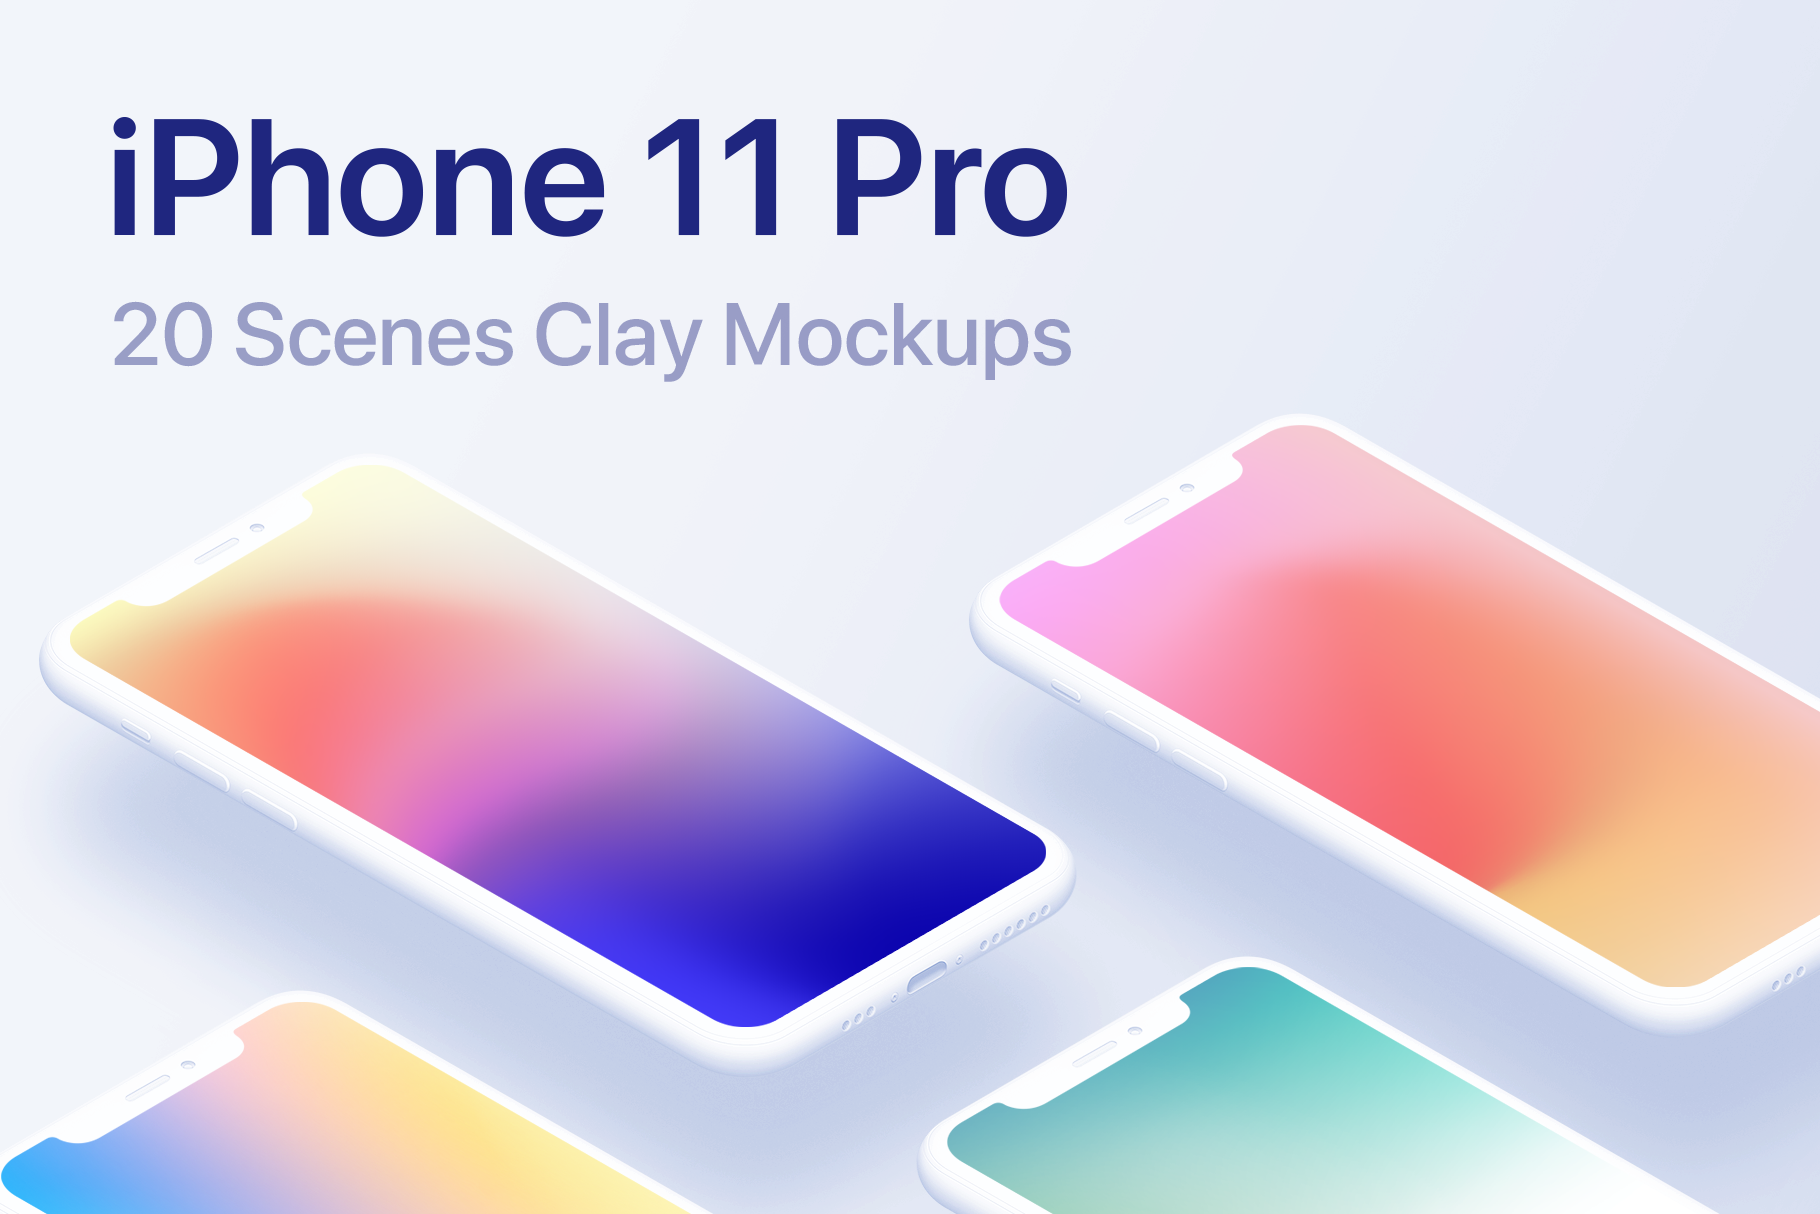 iPhone 11 Pro - 20 Clay Mockups Scenes - PSD example image 1